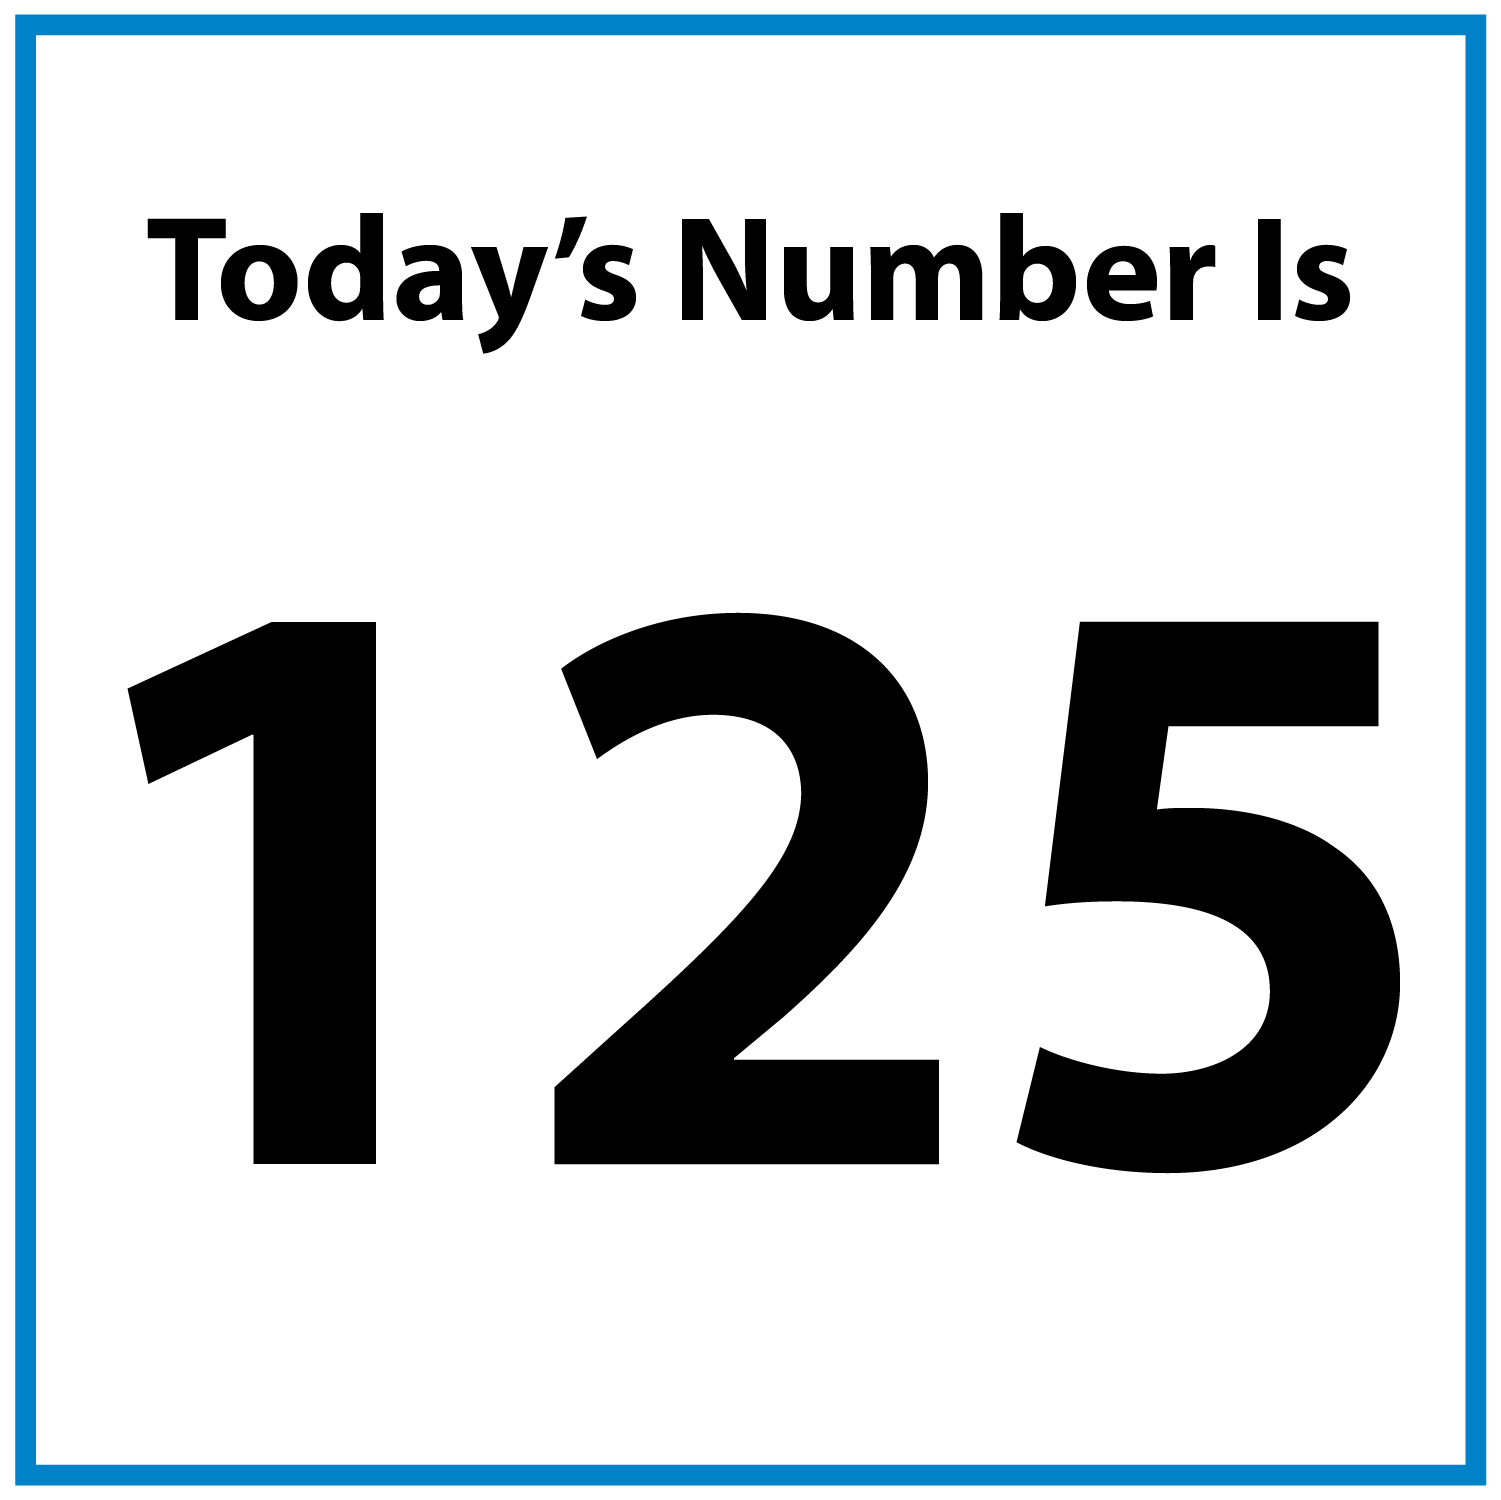 Today's number is 125.